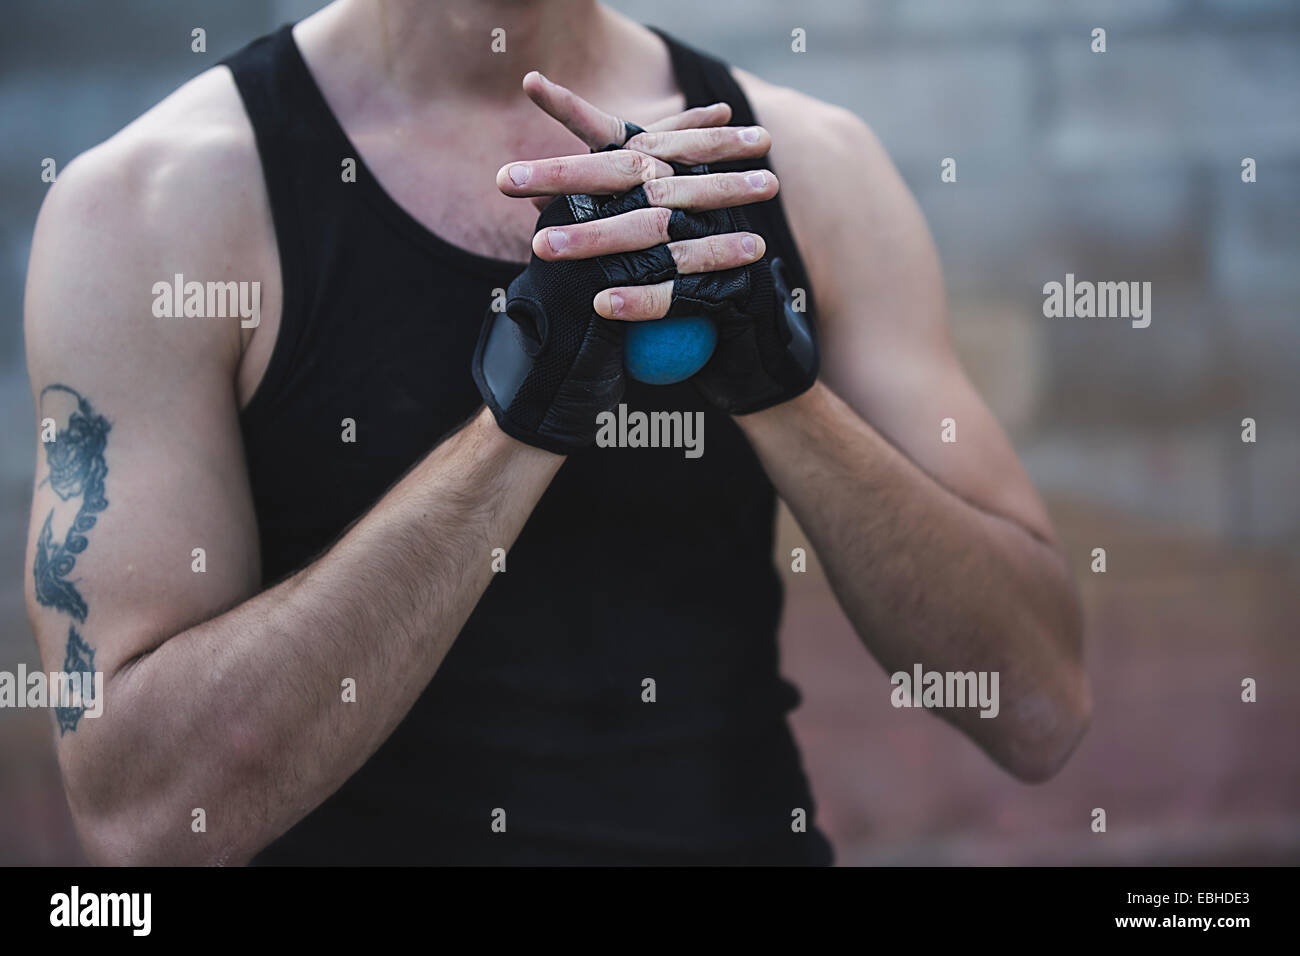 Cropped shot of young male handball player squeezing ball - Stock Image